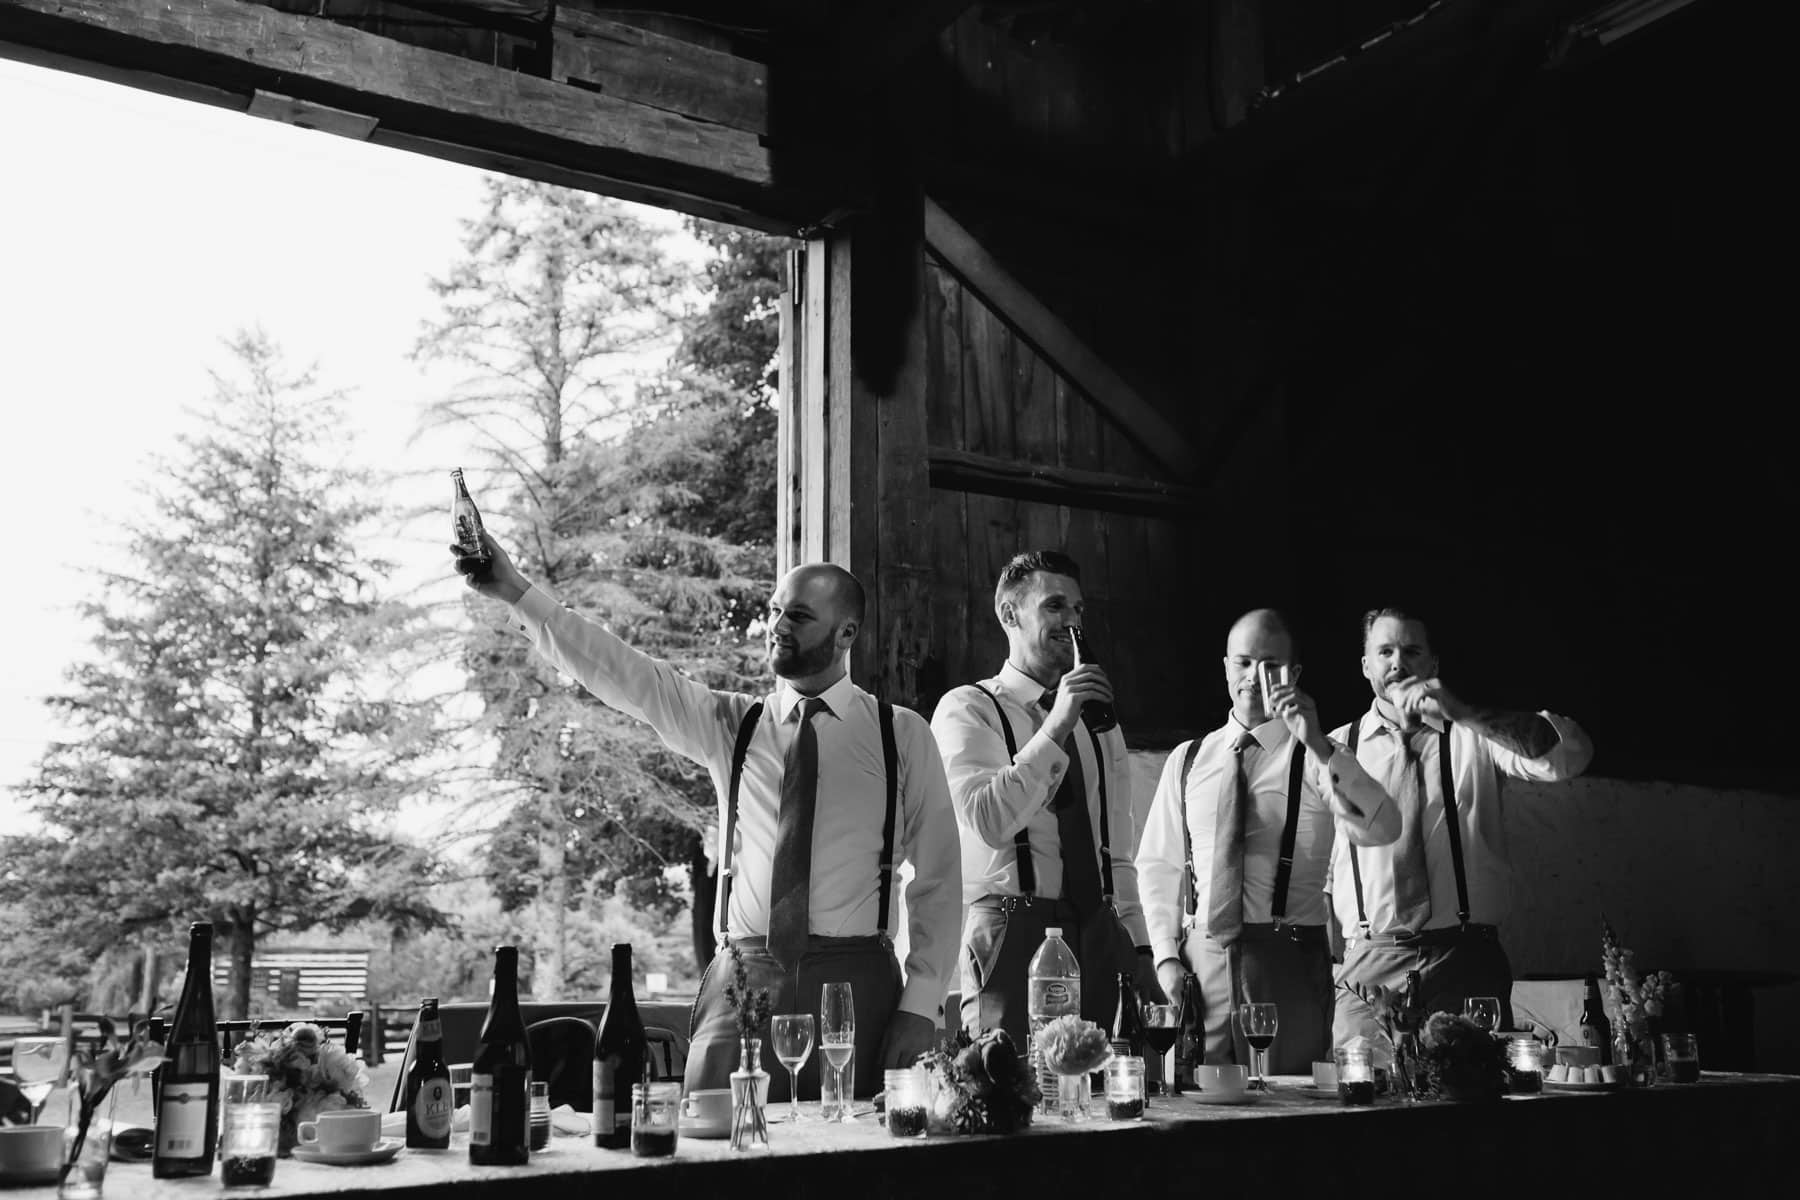 The groomsmen toast the bride and groom during their speech in a barn at this Ball's Falls, Ontario wedding.